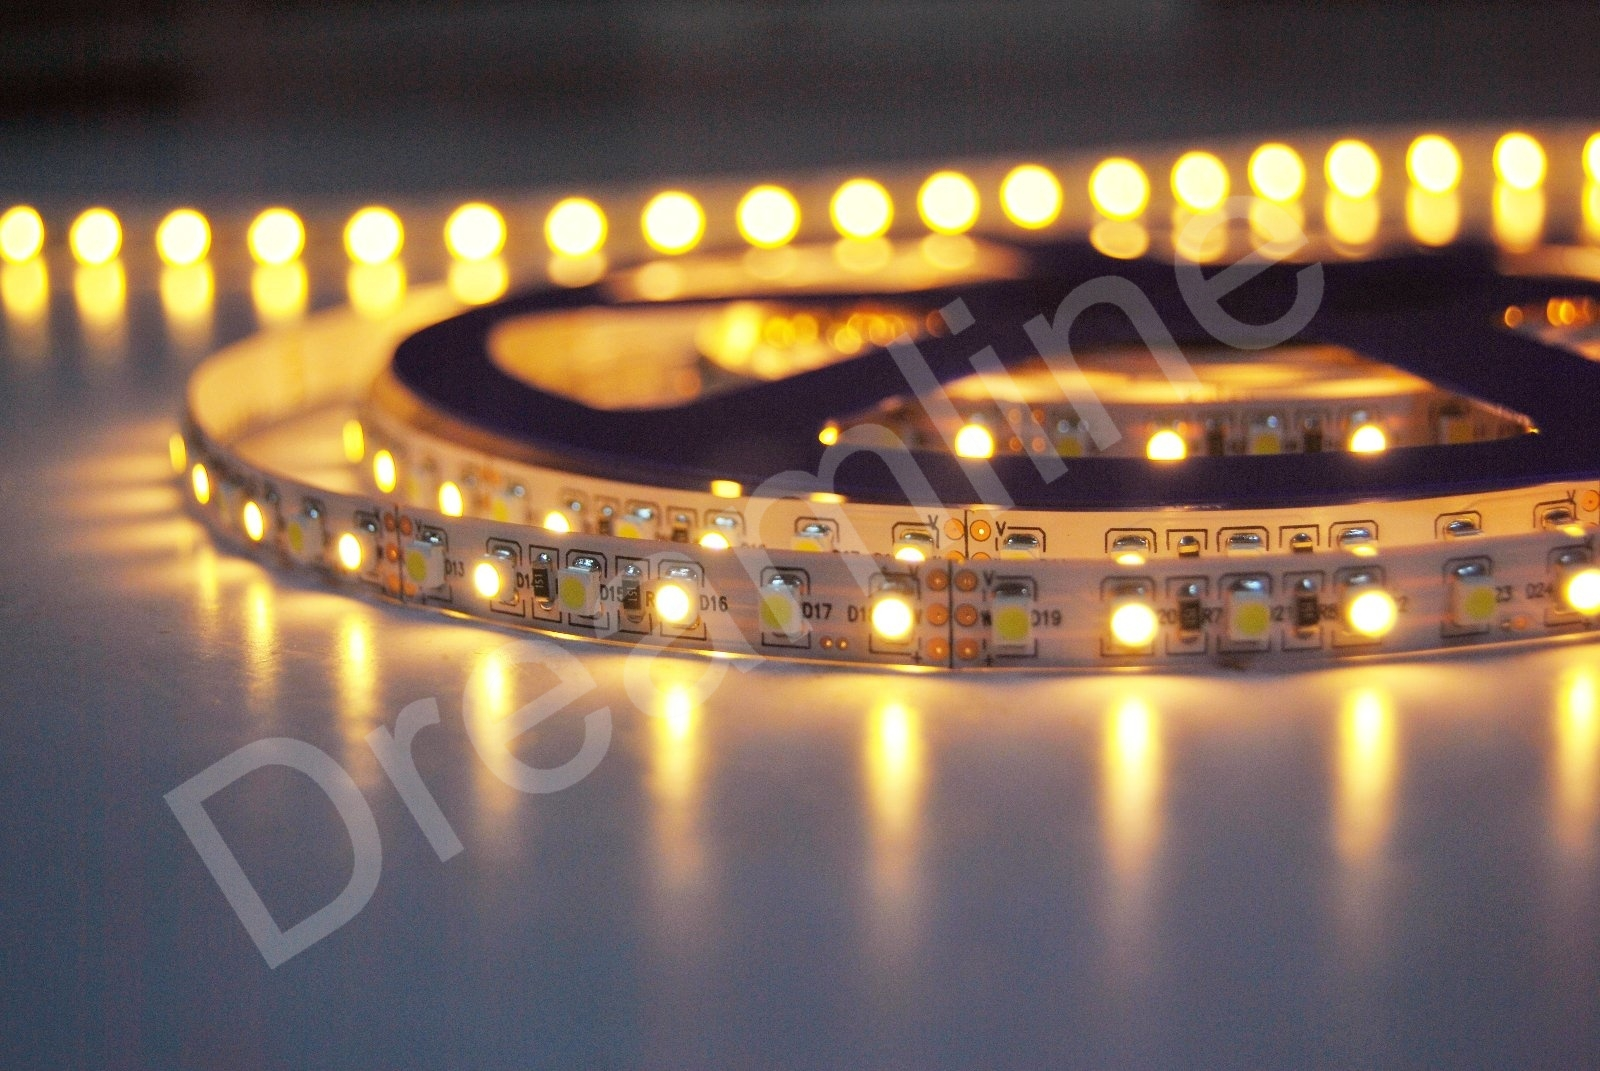 farbtemperatur led strip innen 500cm und 600 smd leds. Black Bedroom Furniture Sets. Home Design Ideas